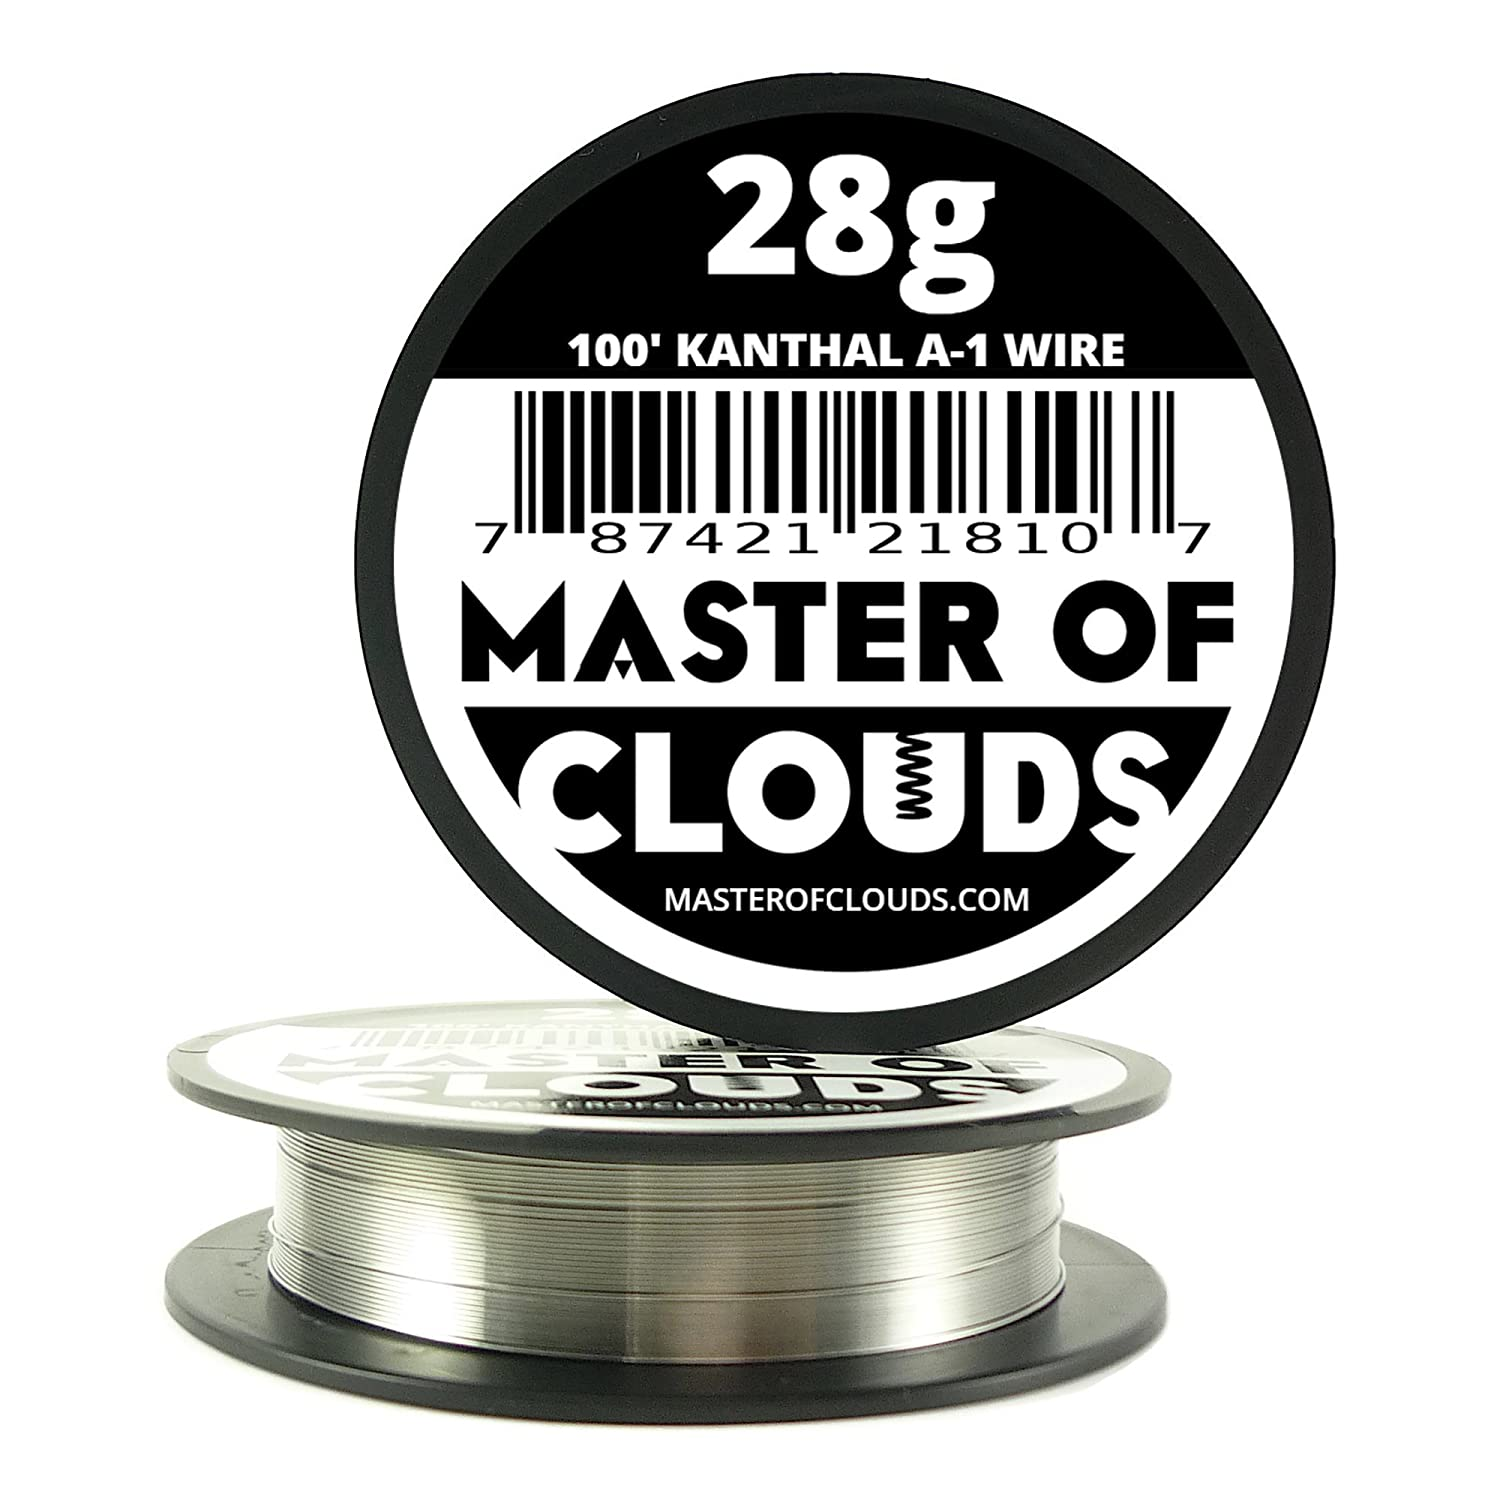 100 ft 28 gauge kanthal a1 resistance wire awg 100 lengths 100 ft 28 gauge kanthal a1 resistance wire awg 100 lengths amazon greentooth Gallery